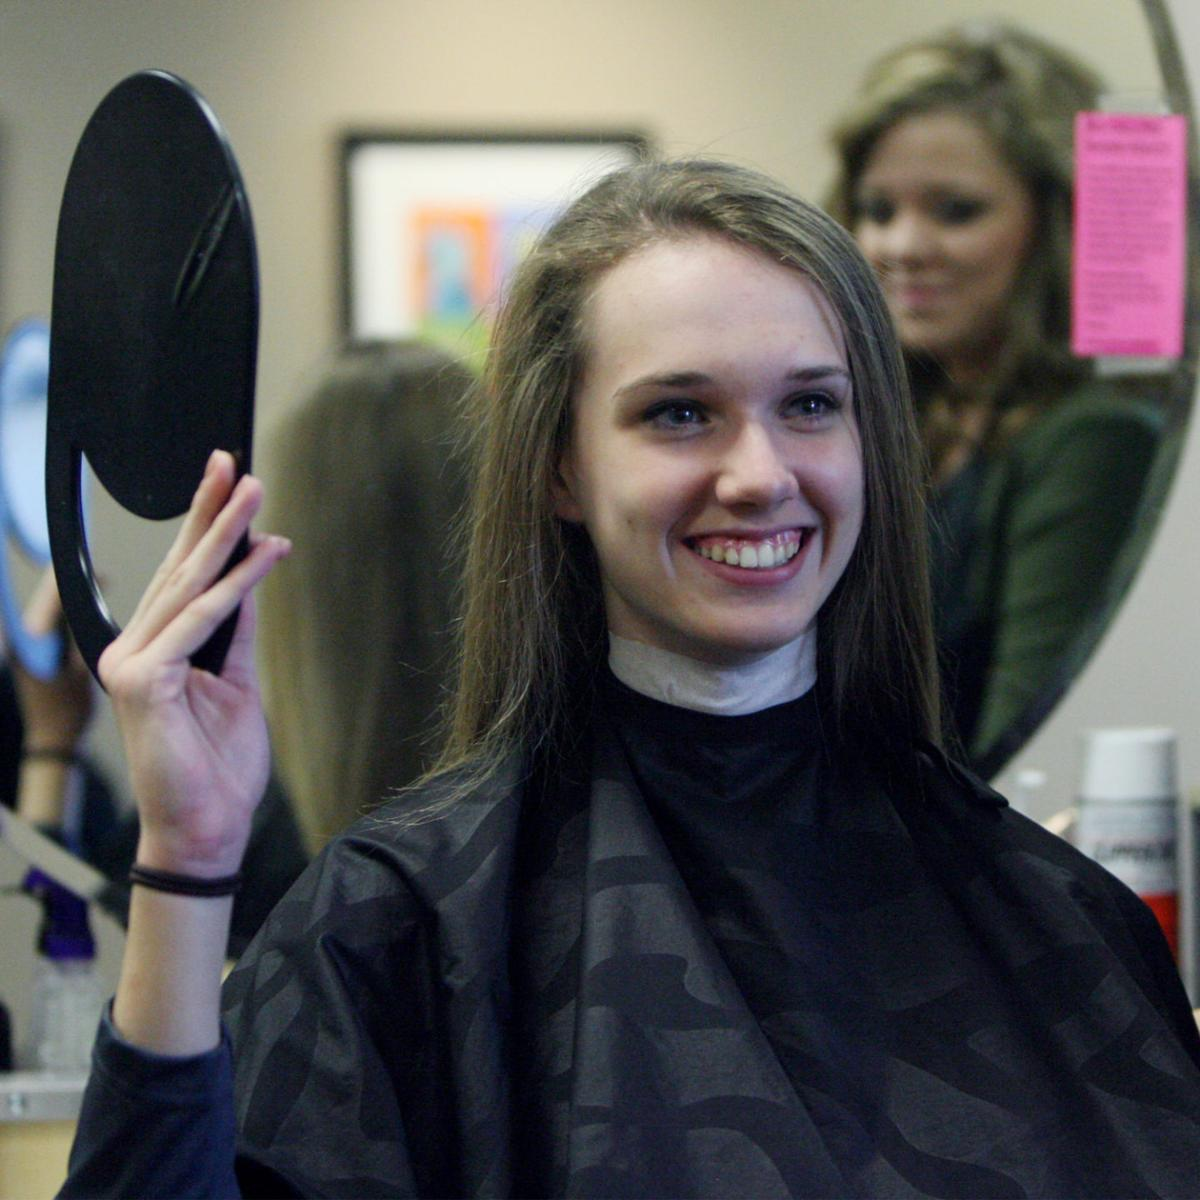 Columbus Gets Hair Cuts To Donate For Cancer Patients Volleyball